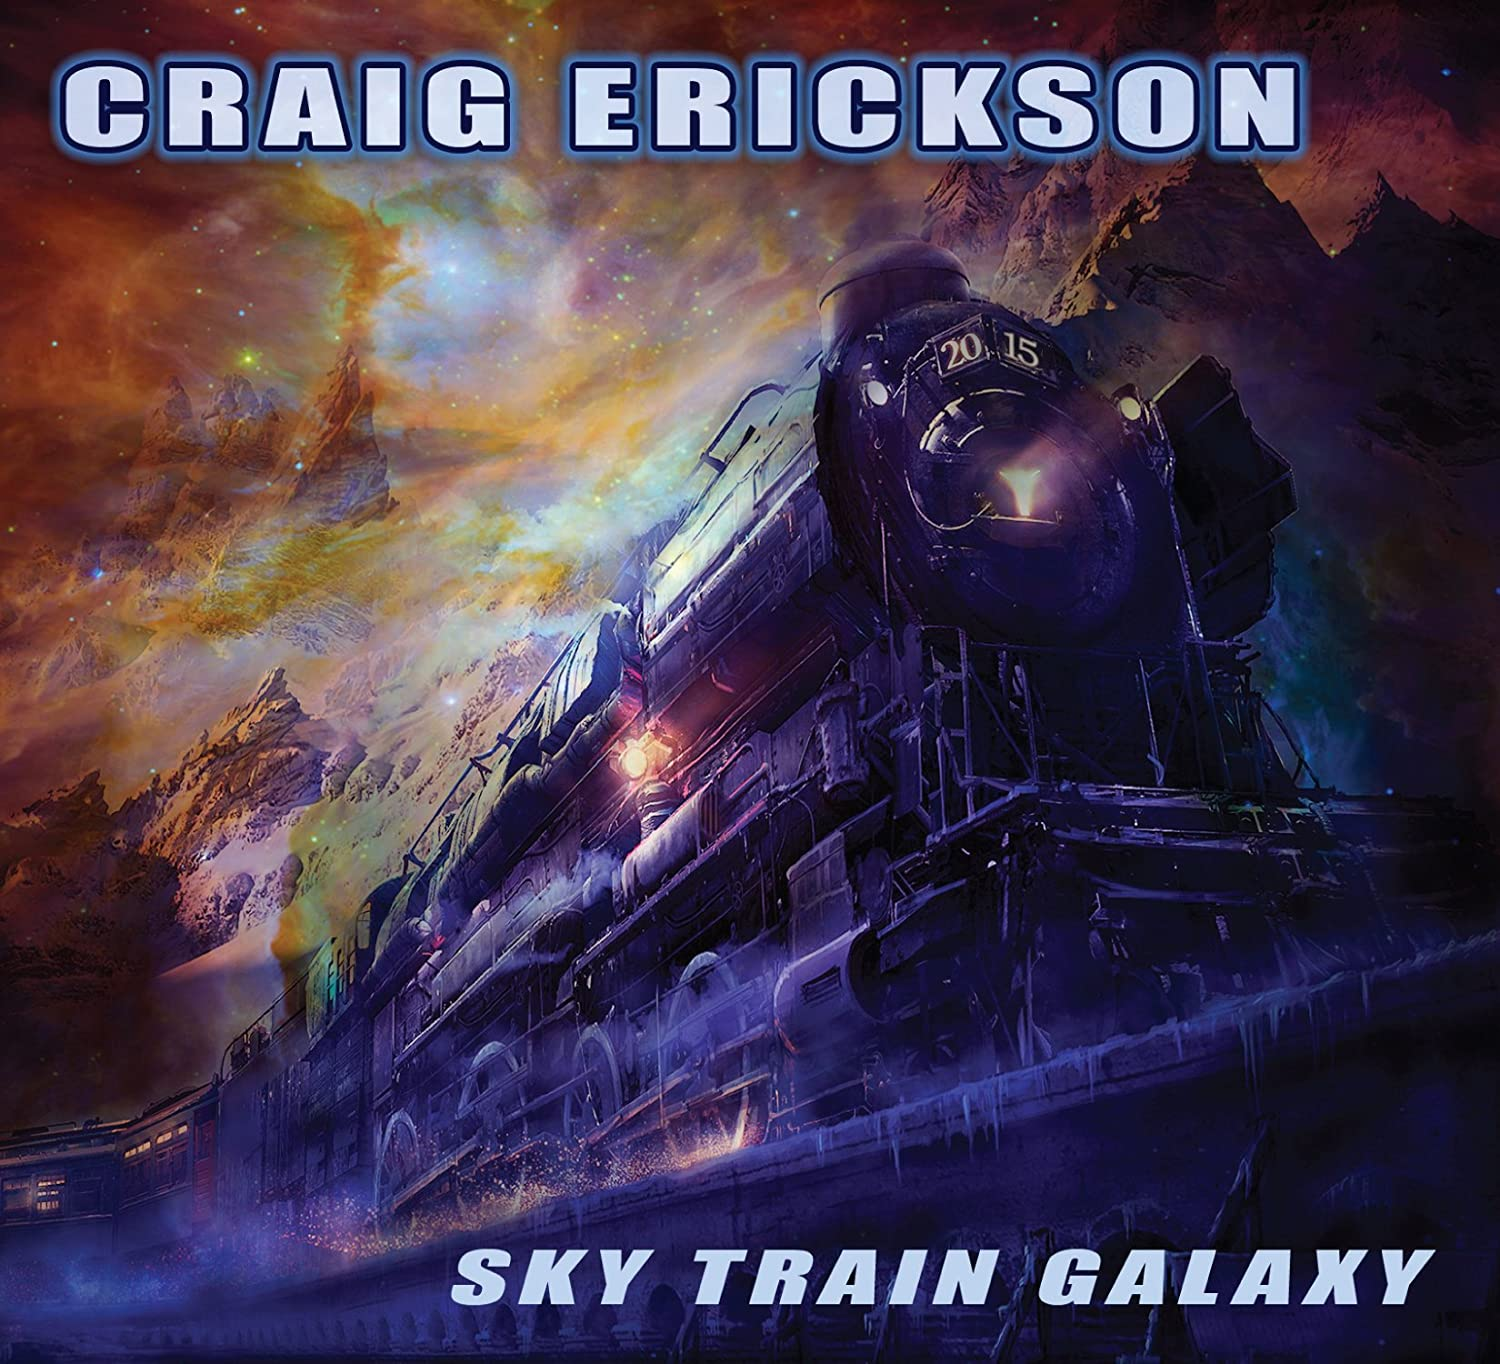 CRAIG ERICKSON Sky Train Galaxy